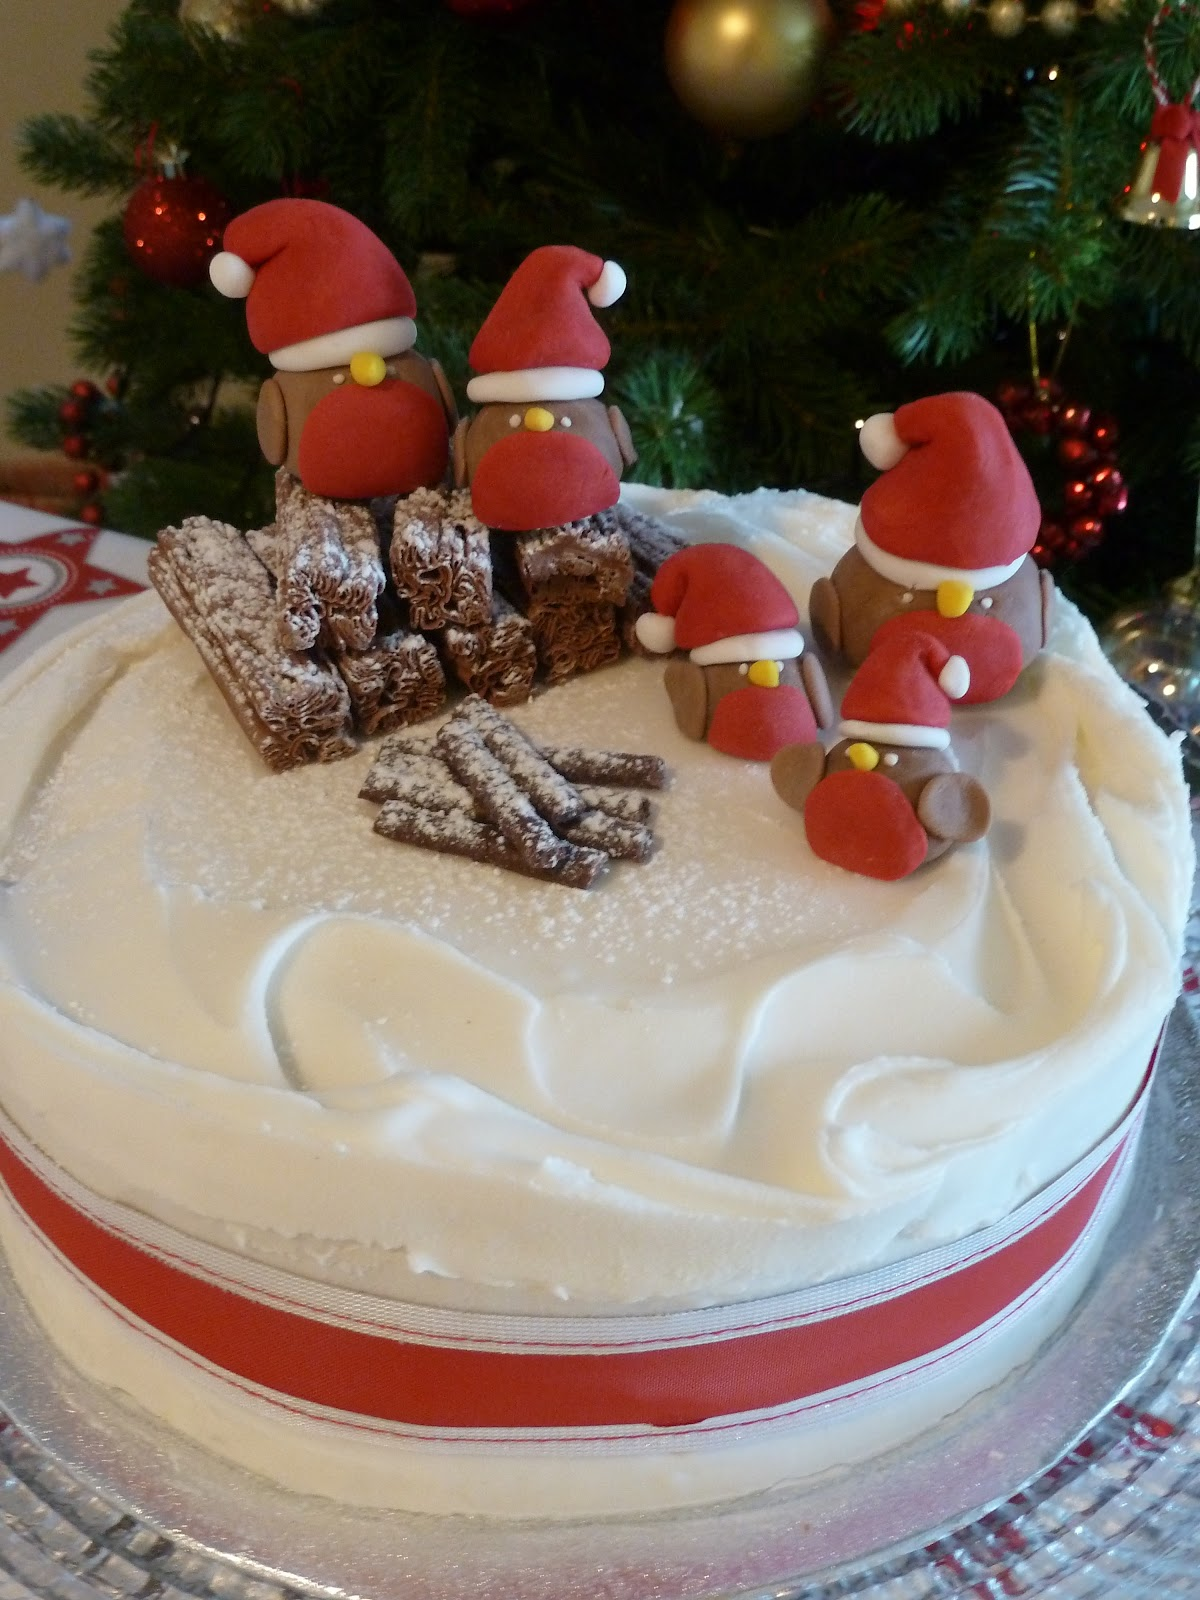 Christmas cake decorated with swirled royal icing